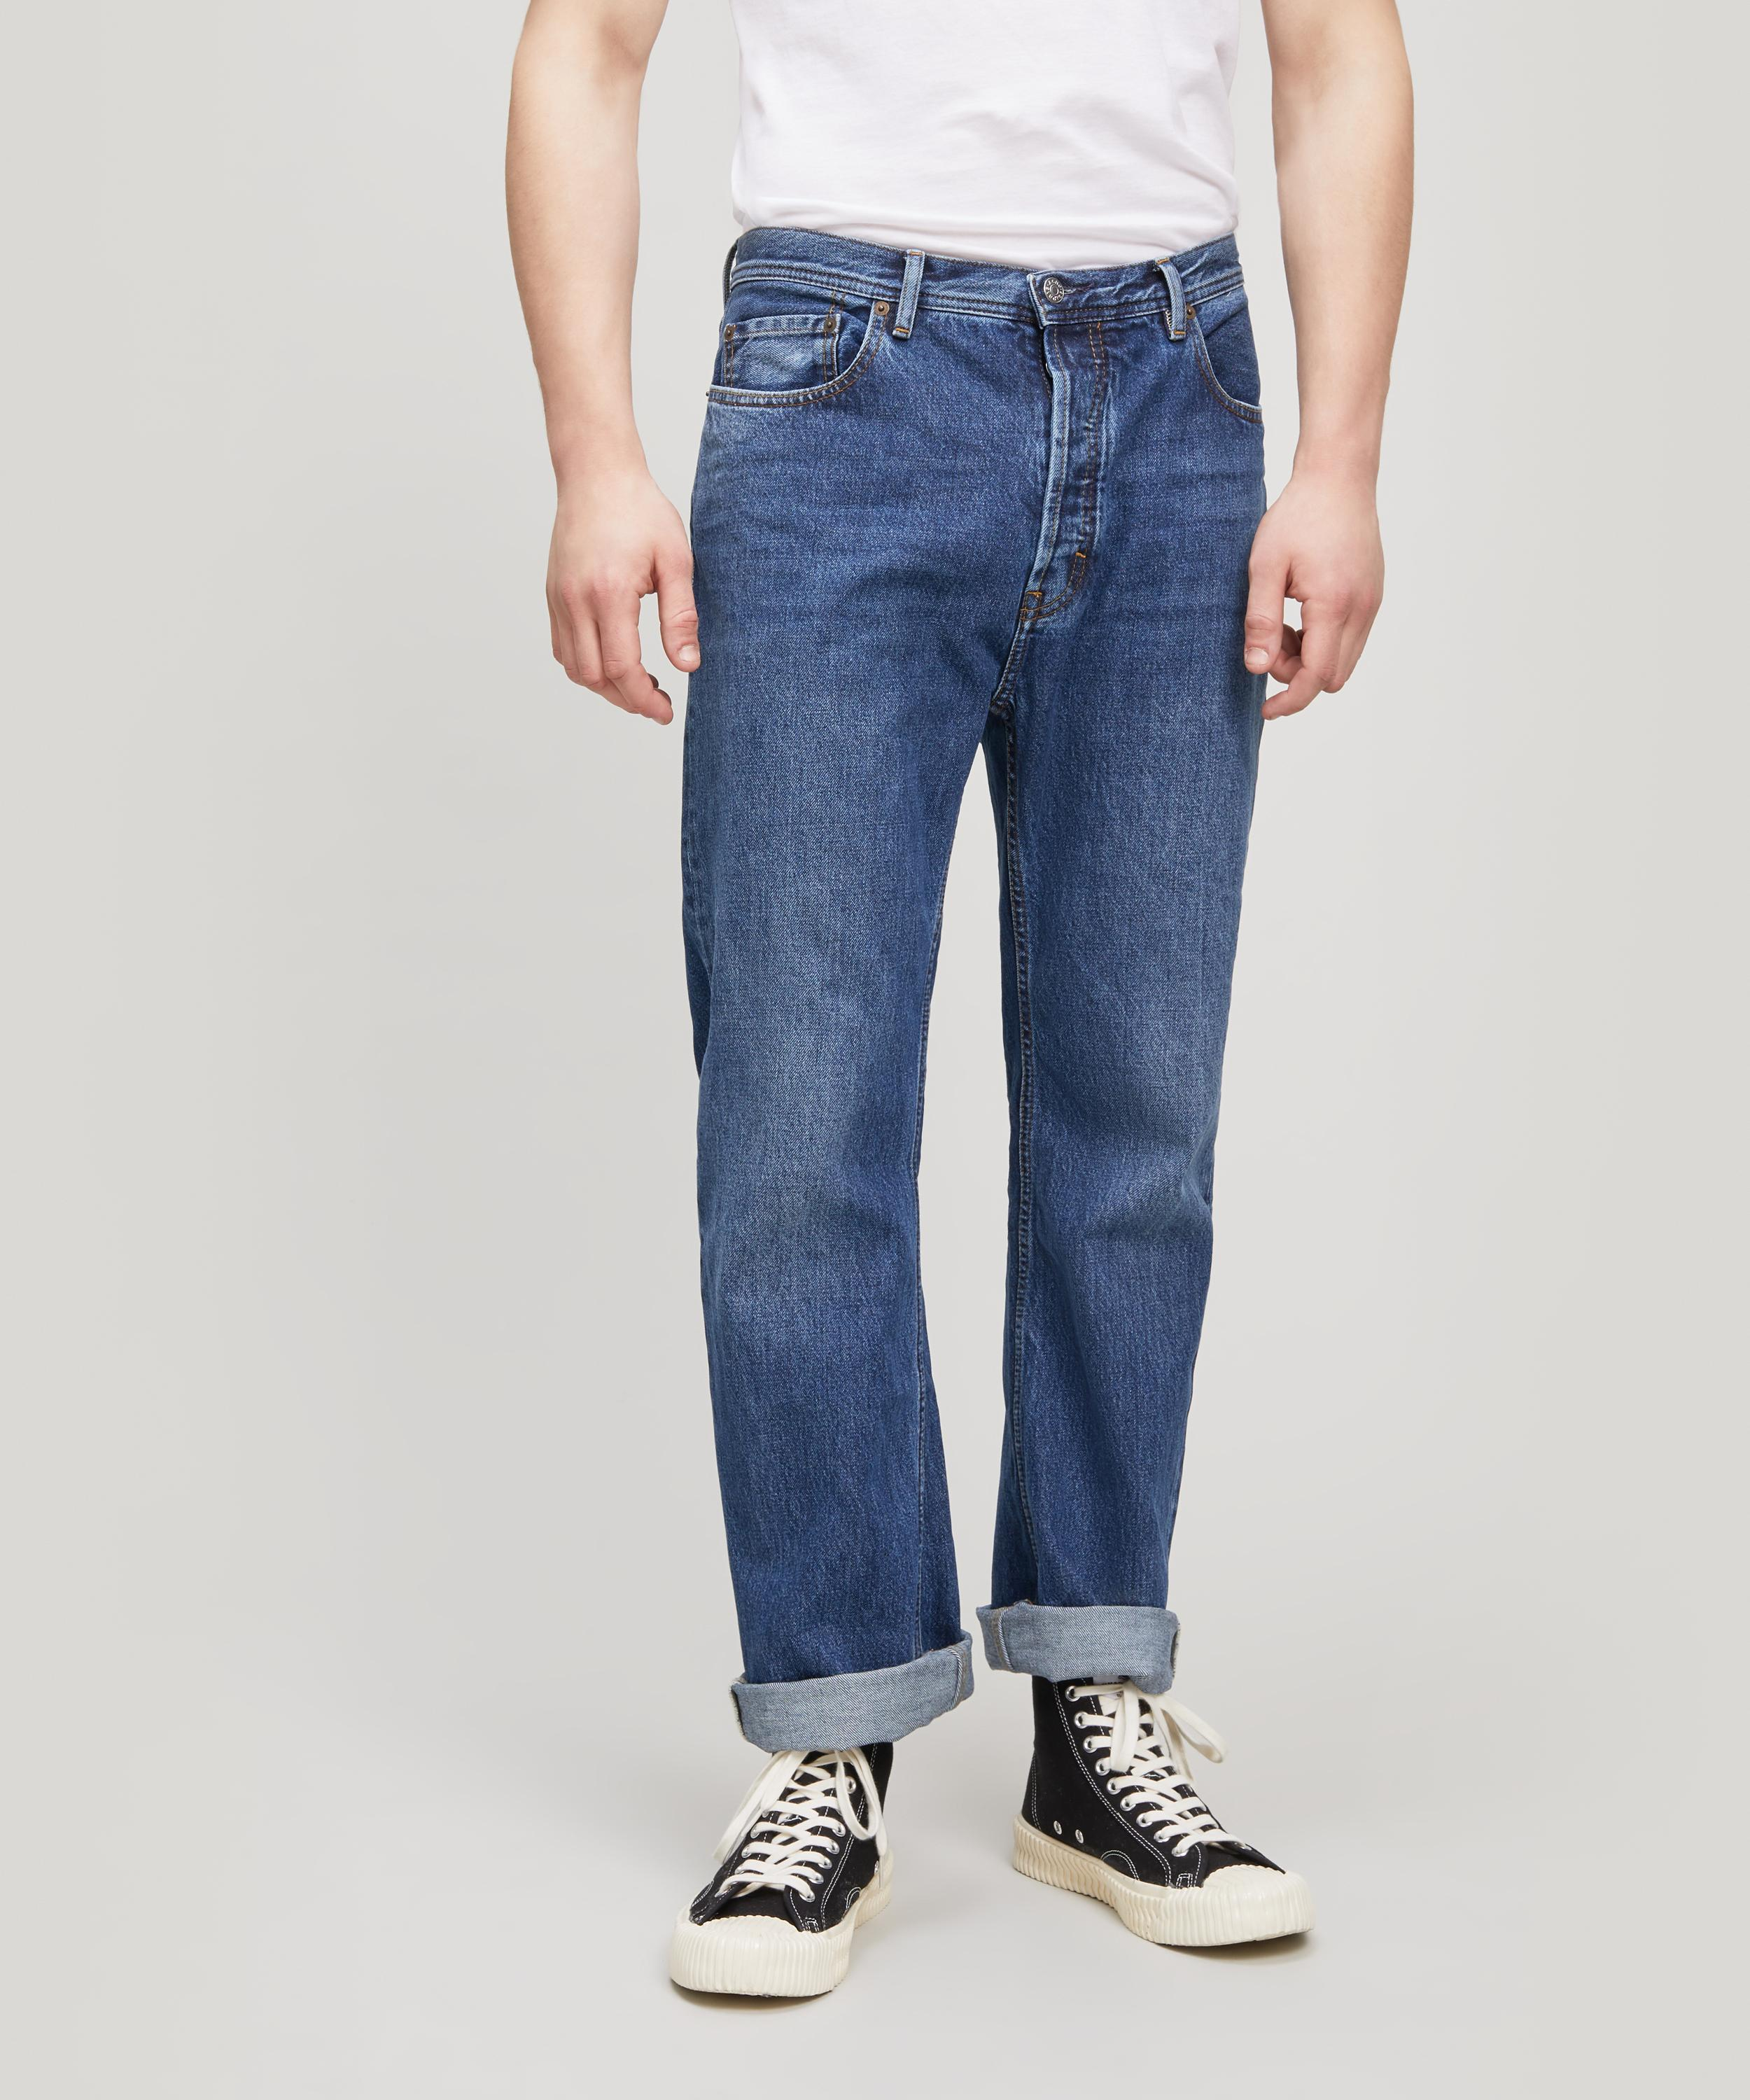 Land in Blue Acne Studios Discount Pictures Outlet Shop Collections Online Outlet Comfortable Amazon For Sale 2Ga4yuJ5DB